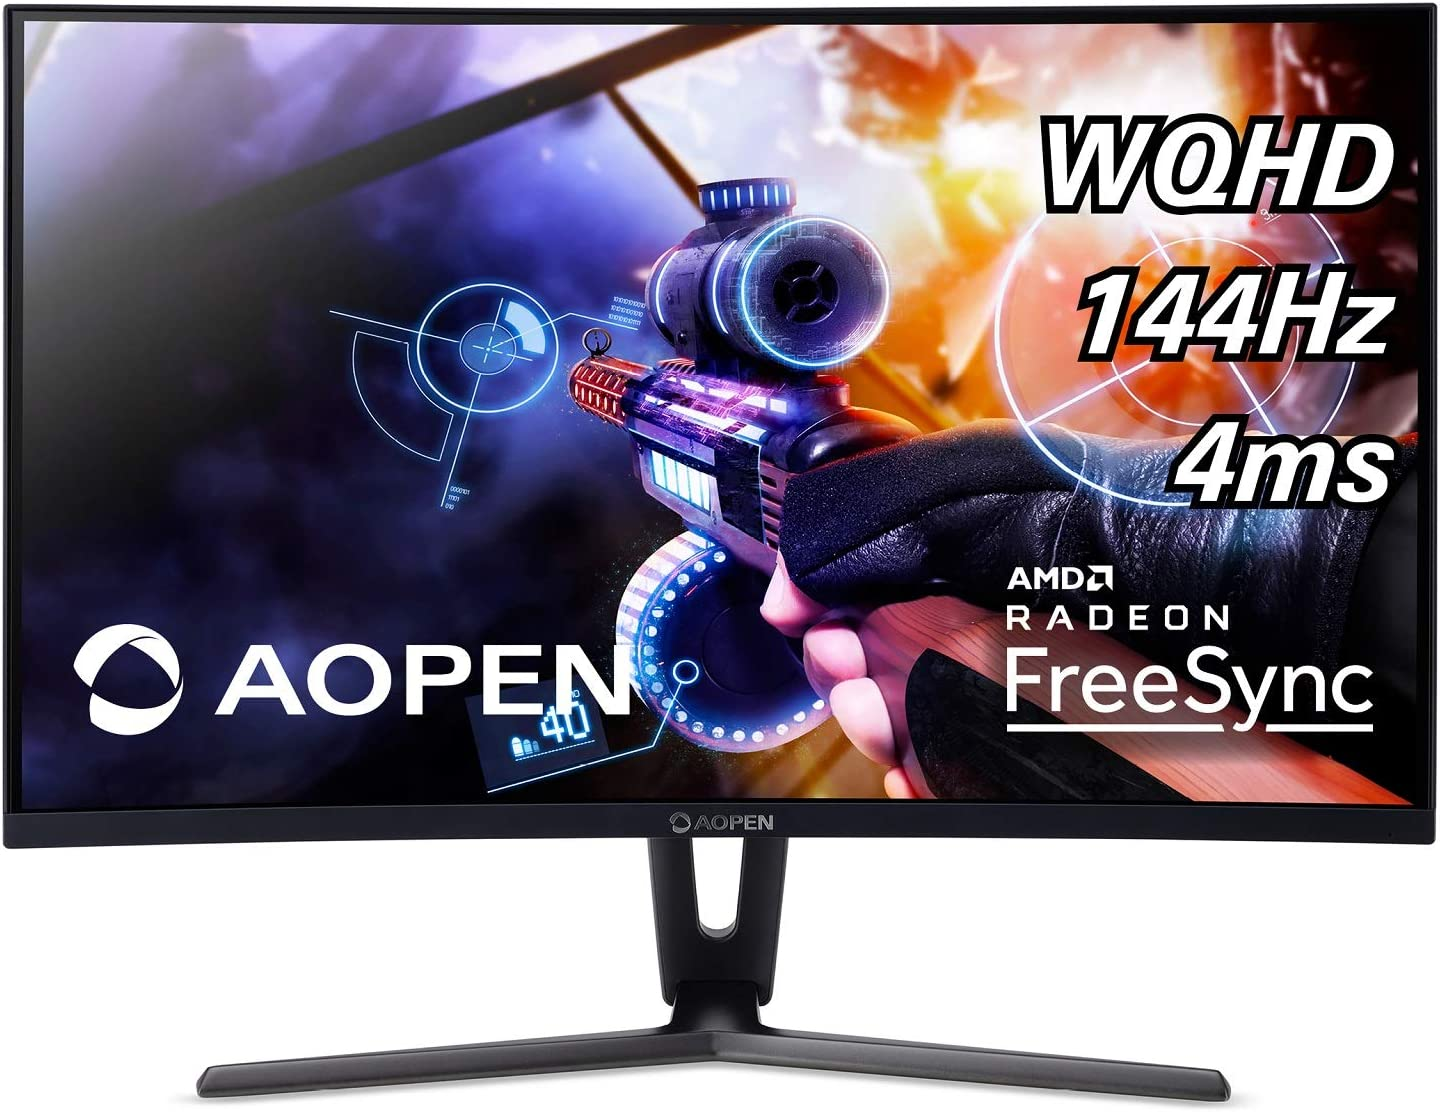 AOPEN 32HC1QUR Pbidpx 31.5-inch 1800R Curved WQHD (2560 x 1440) Gaming Monitor with AMD Radeon FreeSync Technology (Display, HDMI & DVI Ports)